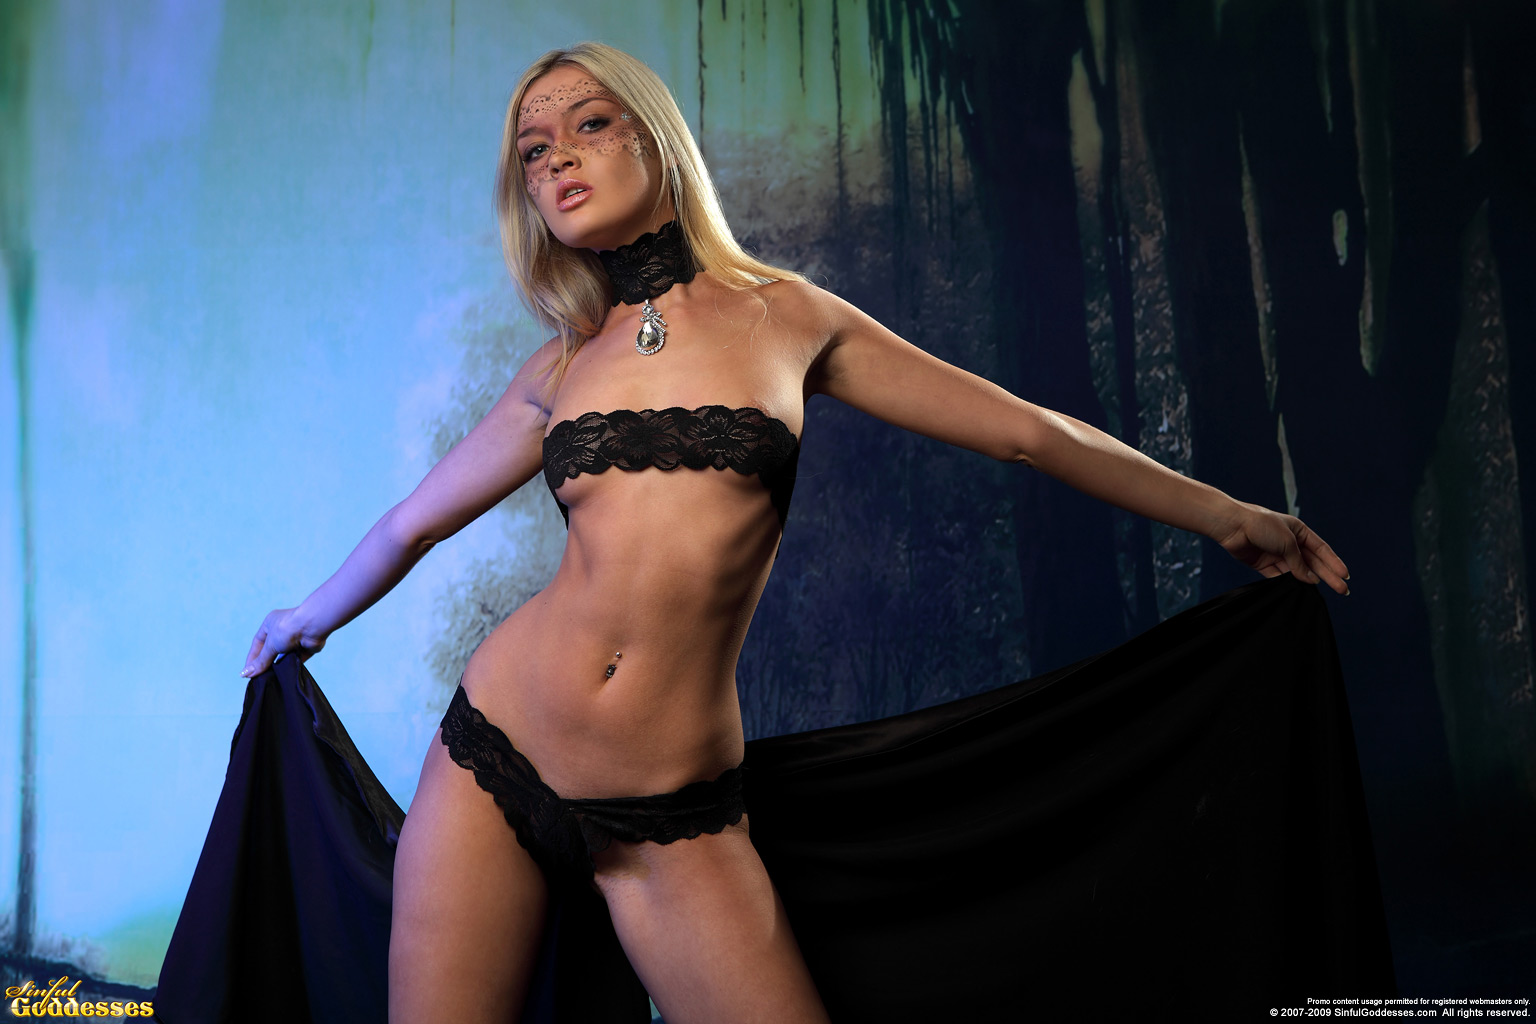 sinfulgoddesses fhg nelly_sybil images nelly_12b jpg